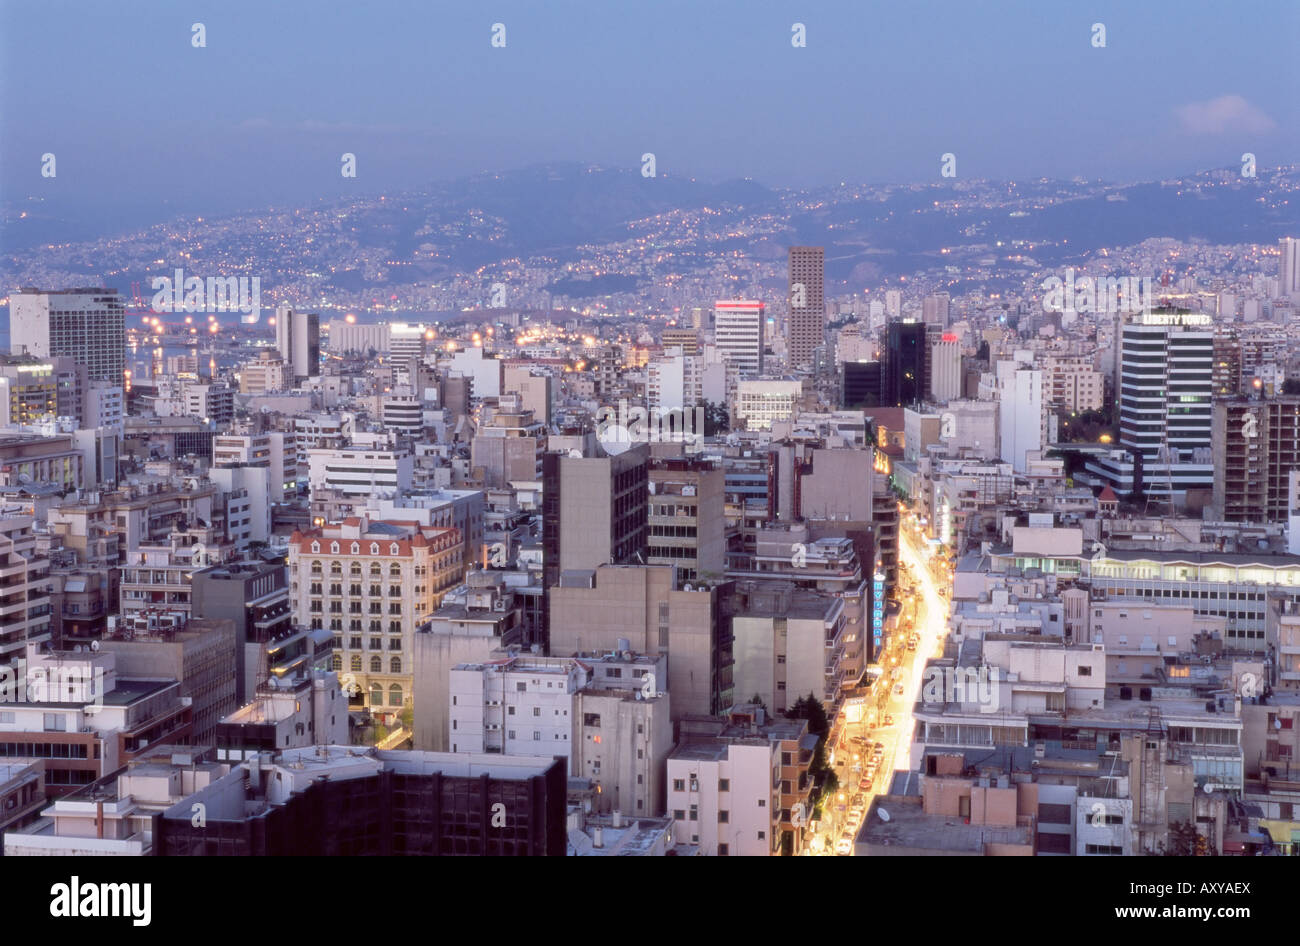 View vers le Quartier Central (BCD) dans la ville reconstruite, Beyrouth, Liban, Moyen-Orient Photo Stock